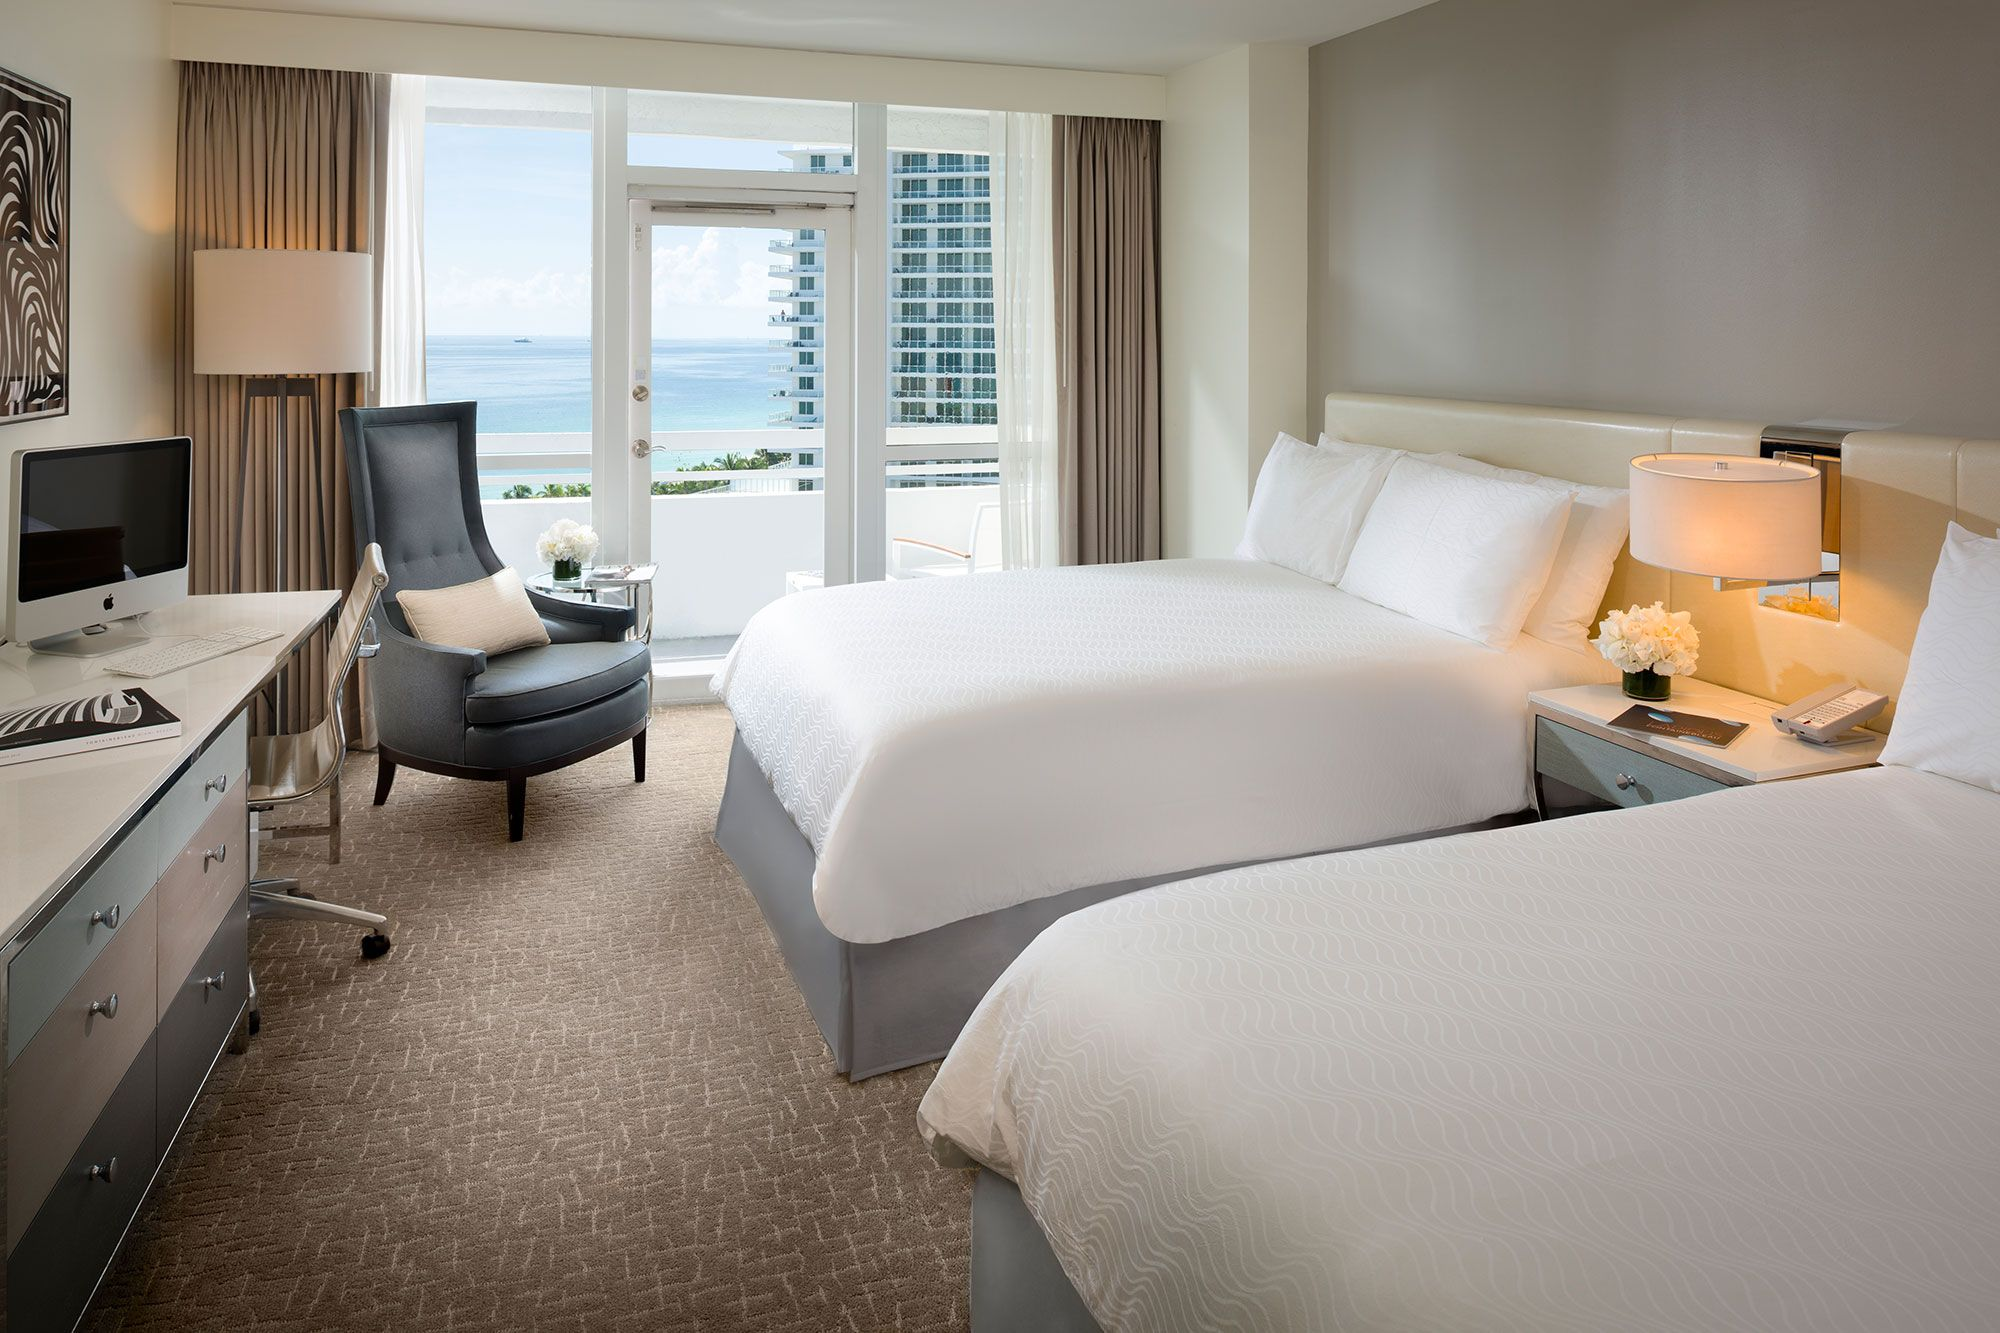 23 Easy Bedroom Suites Miami Beach, You would like your